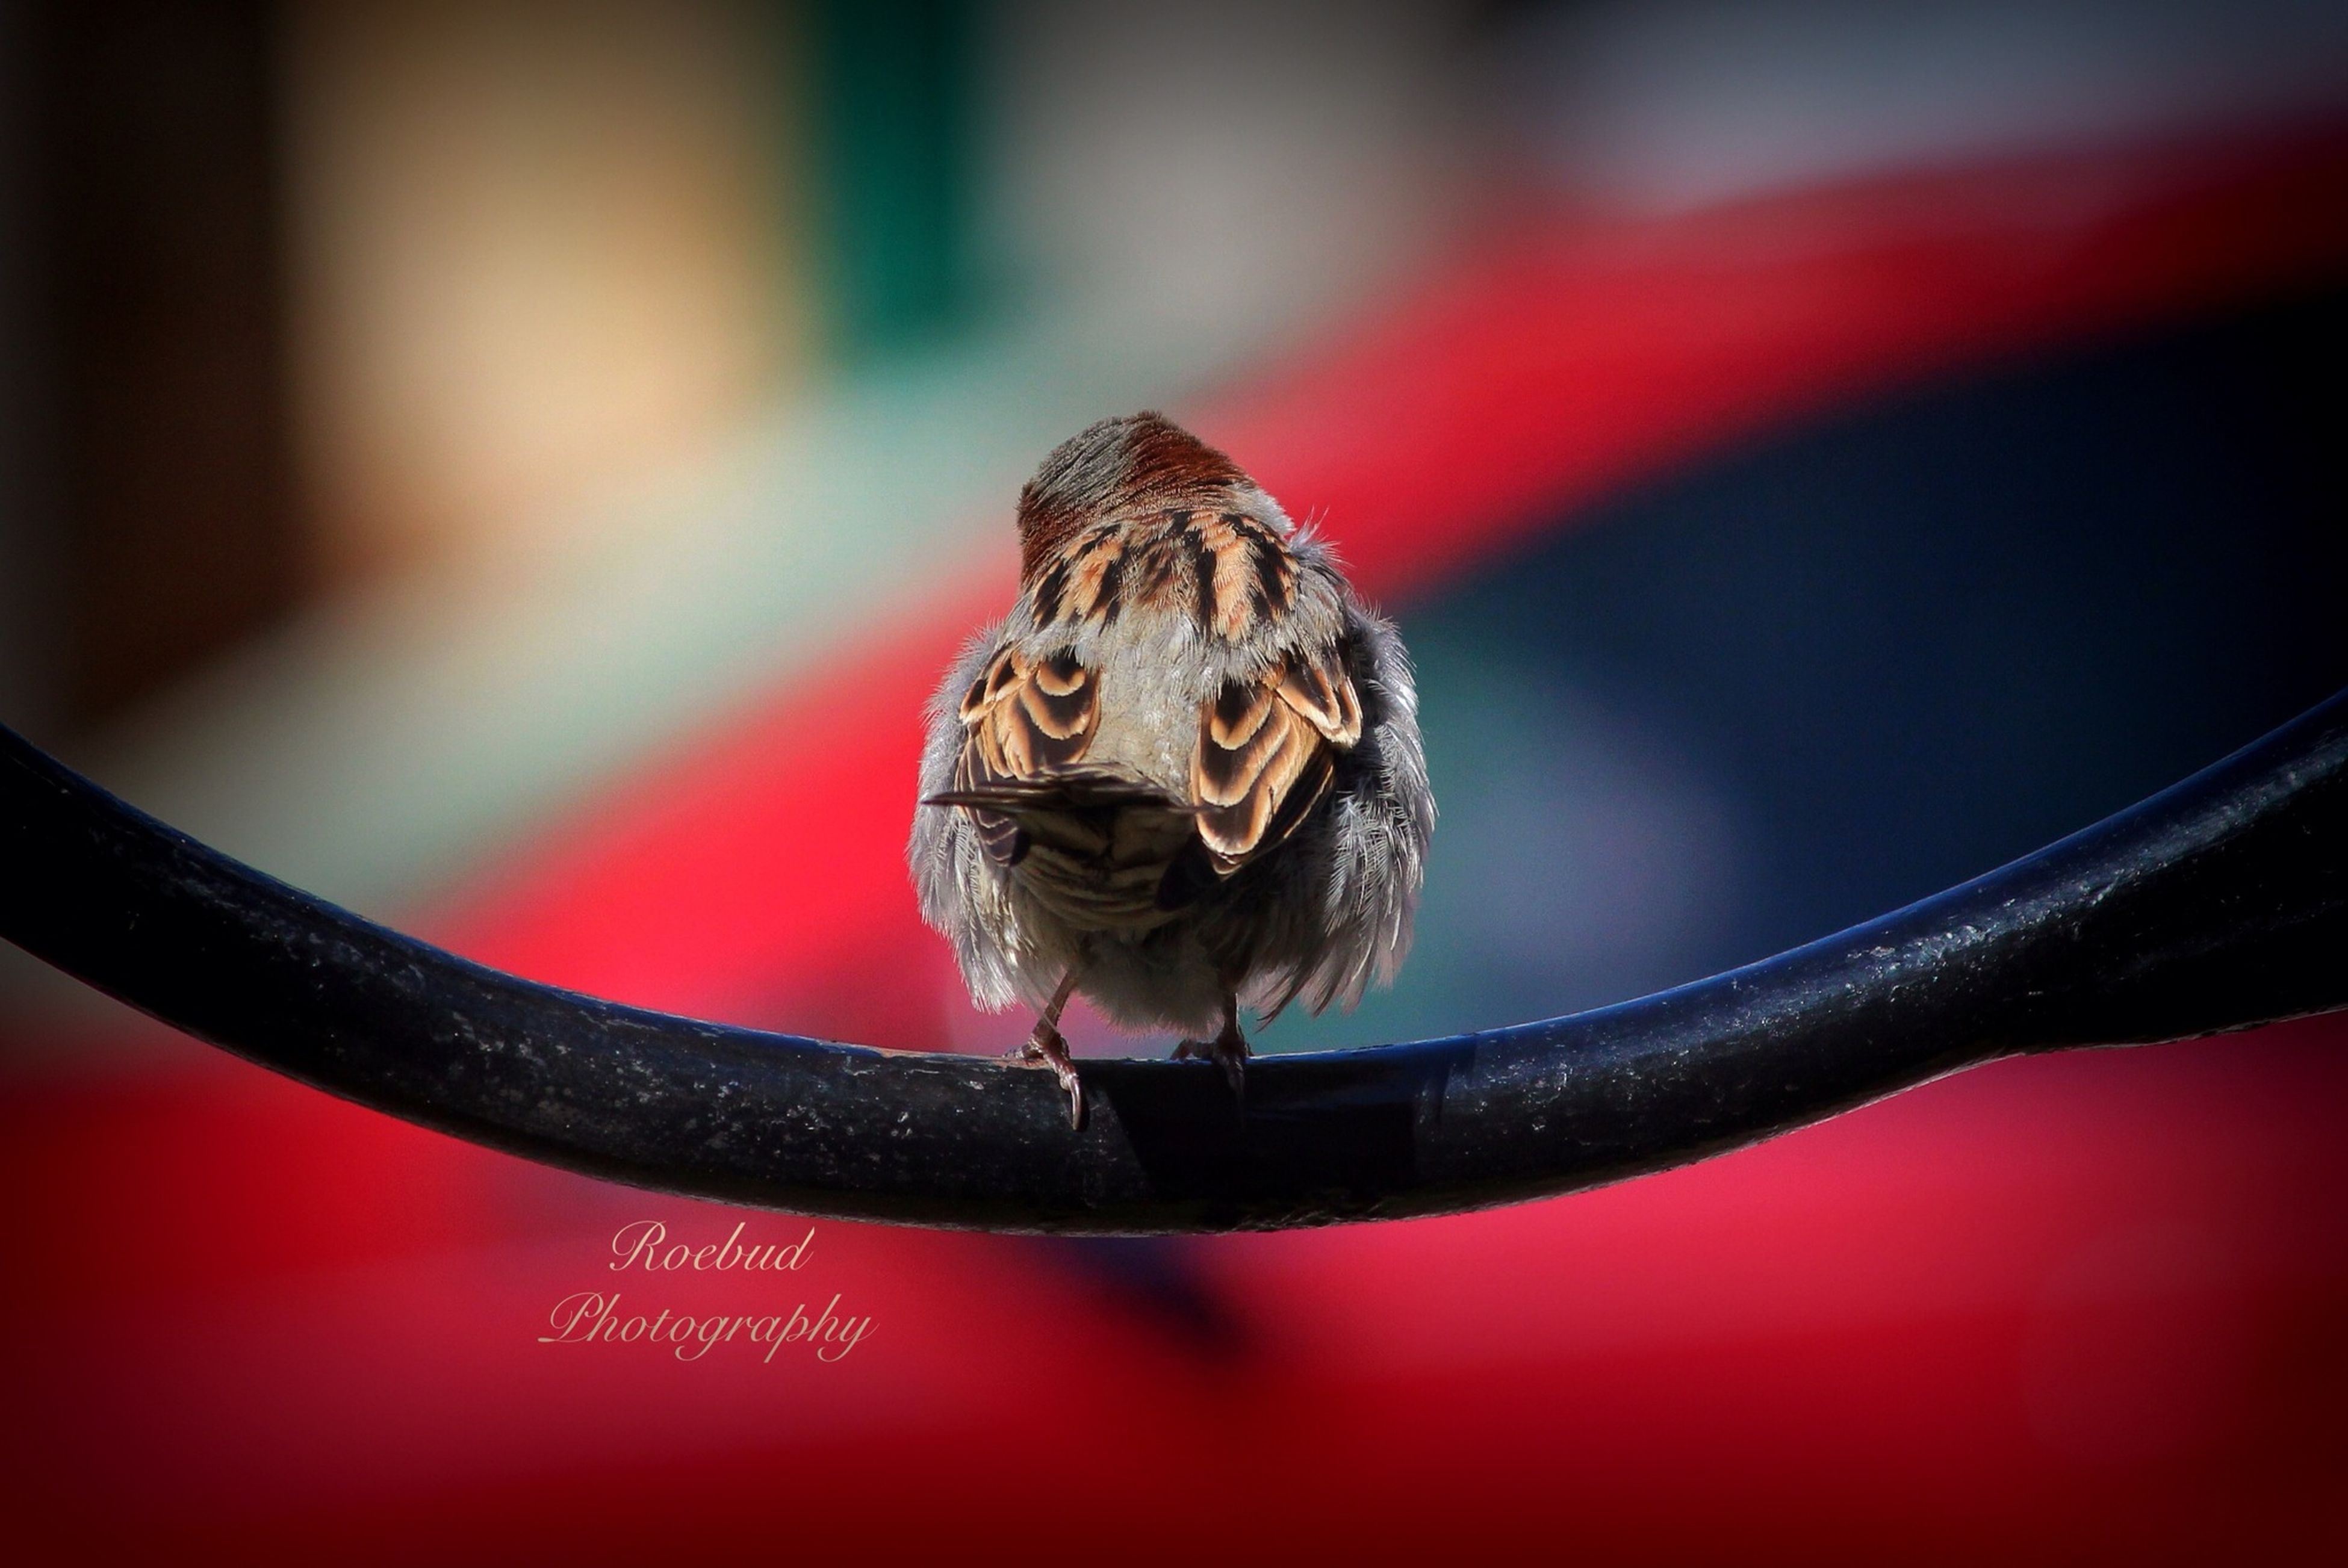 one animal, animal themes, close-up, wildlife, animals in the wild, focus on foreground, indoors, animal eye, selective focus, red, animal head, portrait, no people, zoology, insect, animal body part, animal, day, looking at camera, nature